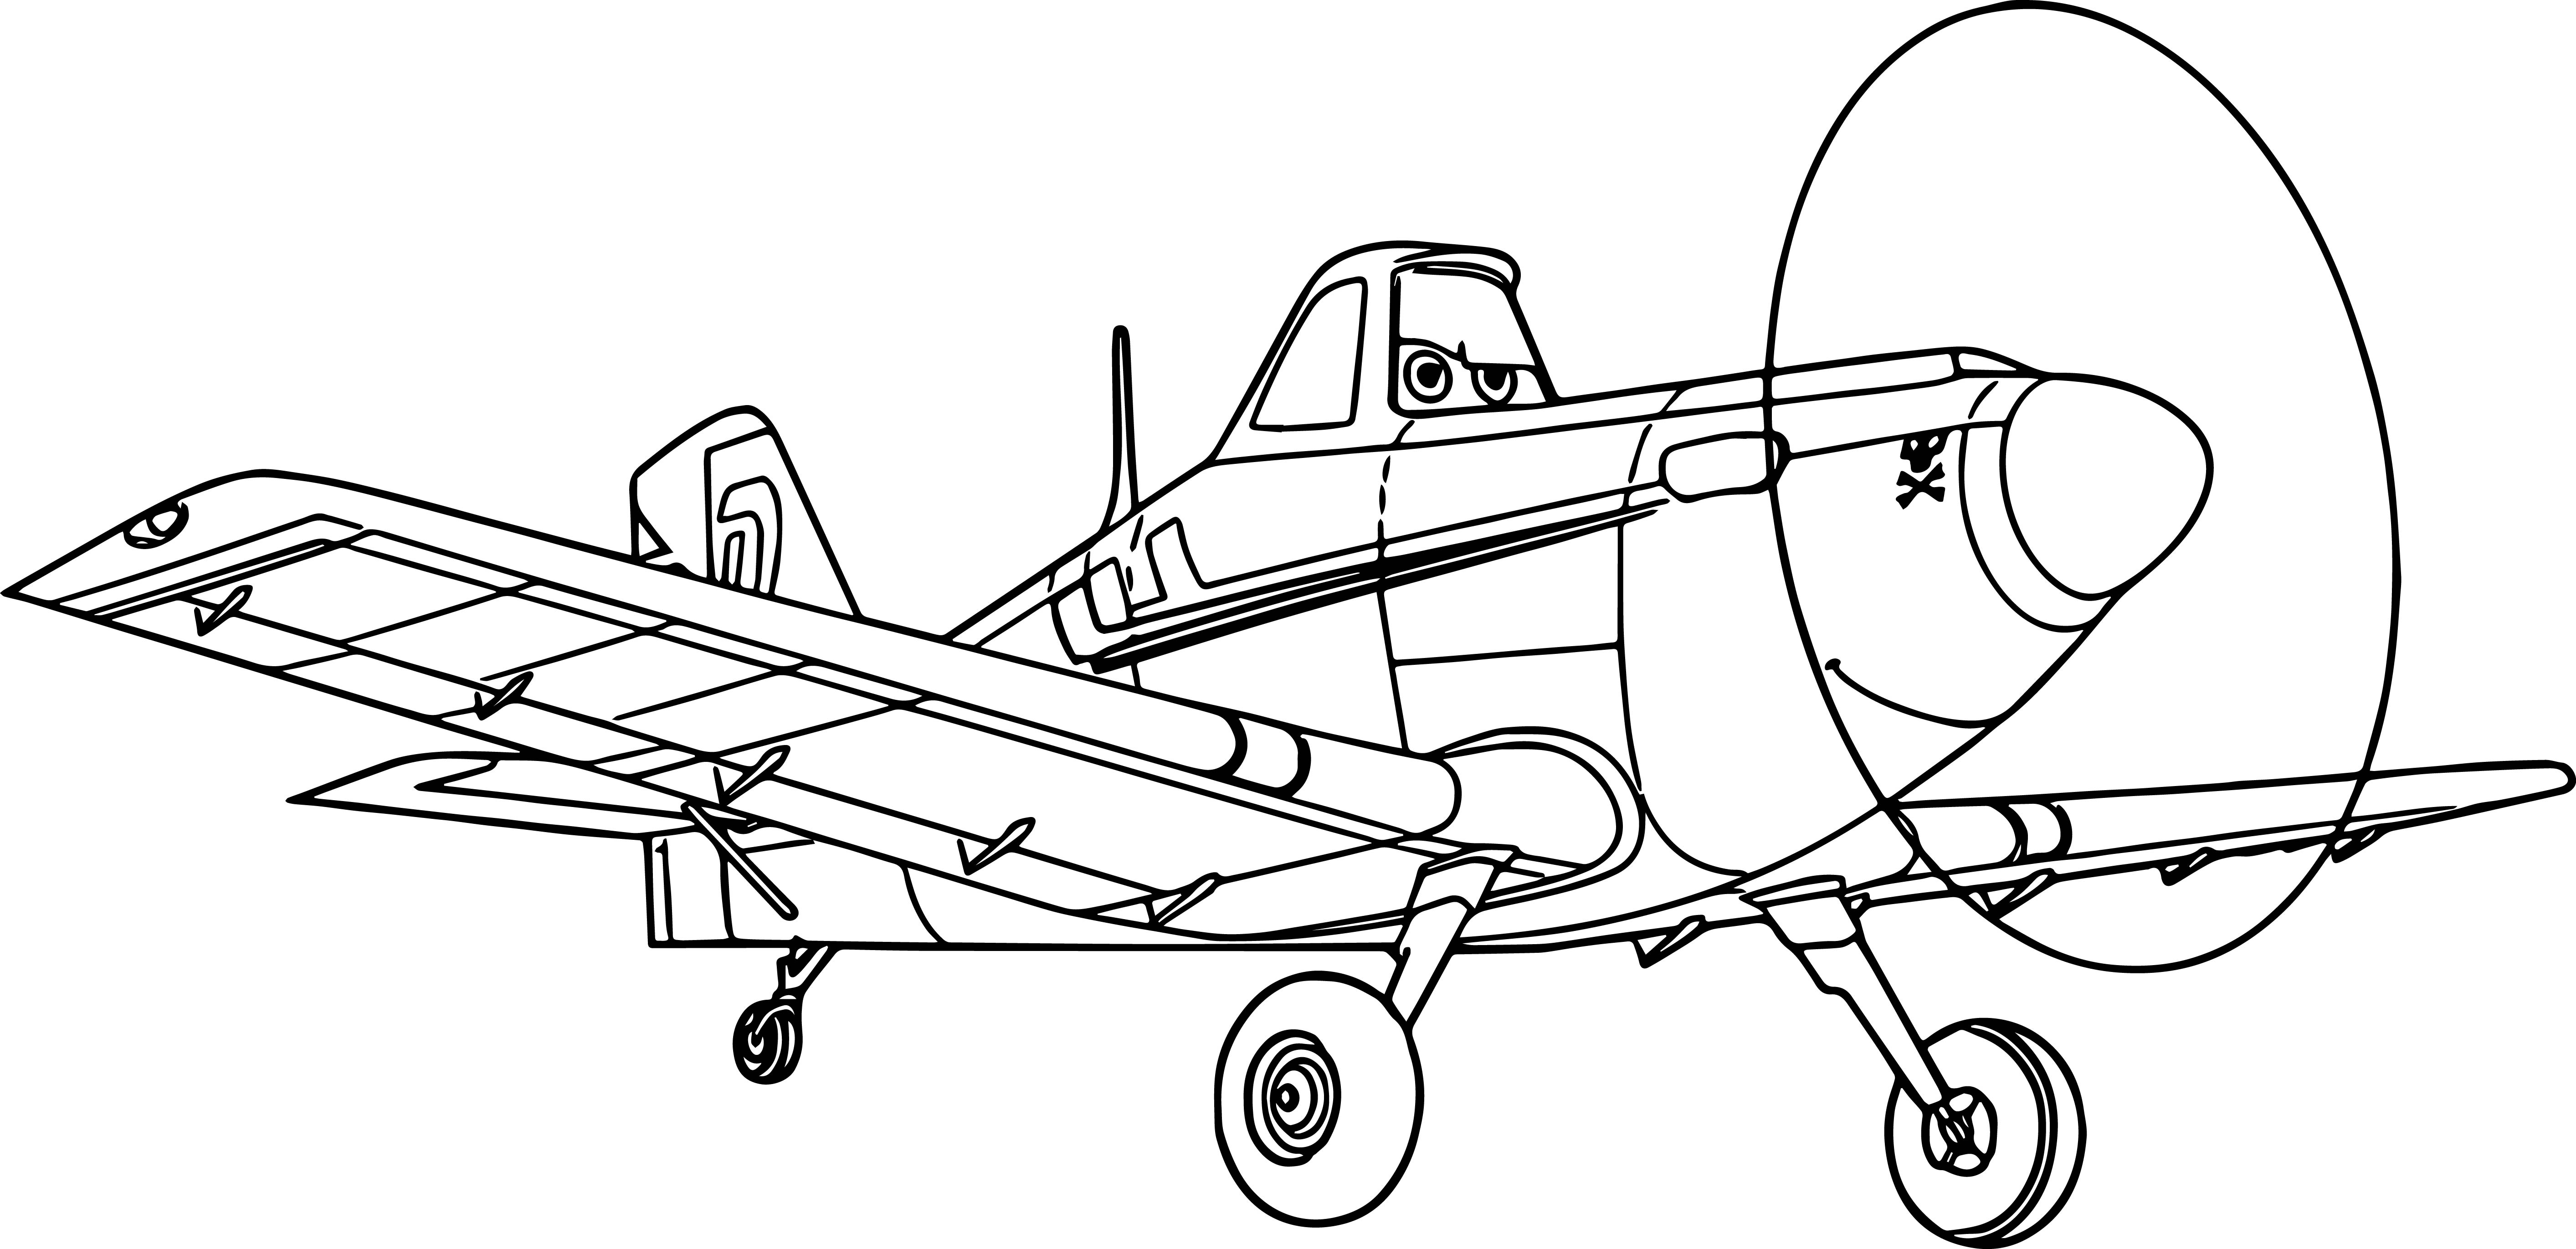 coloring pages planes print download the sophisticated transportation of planes pages coloring